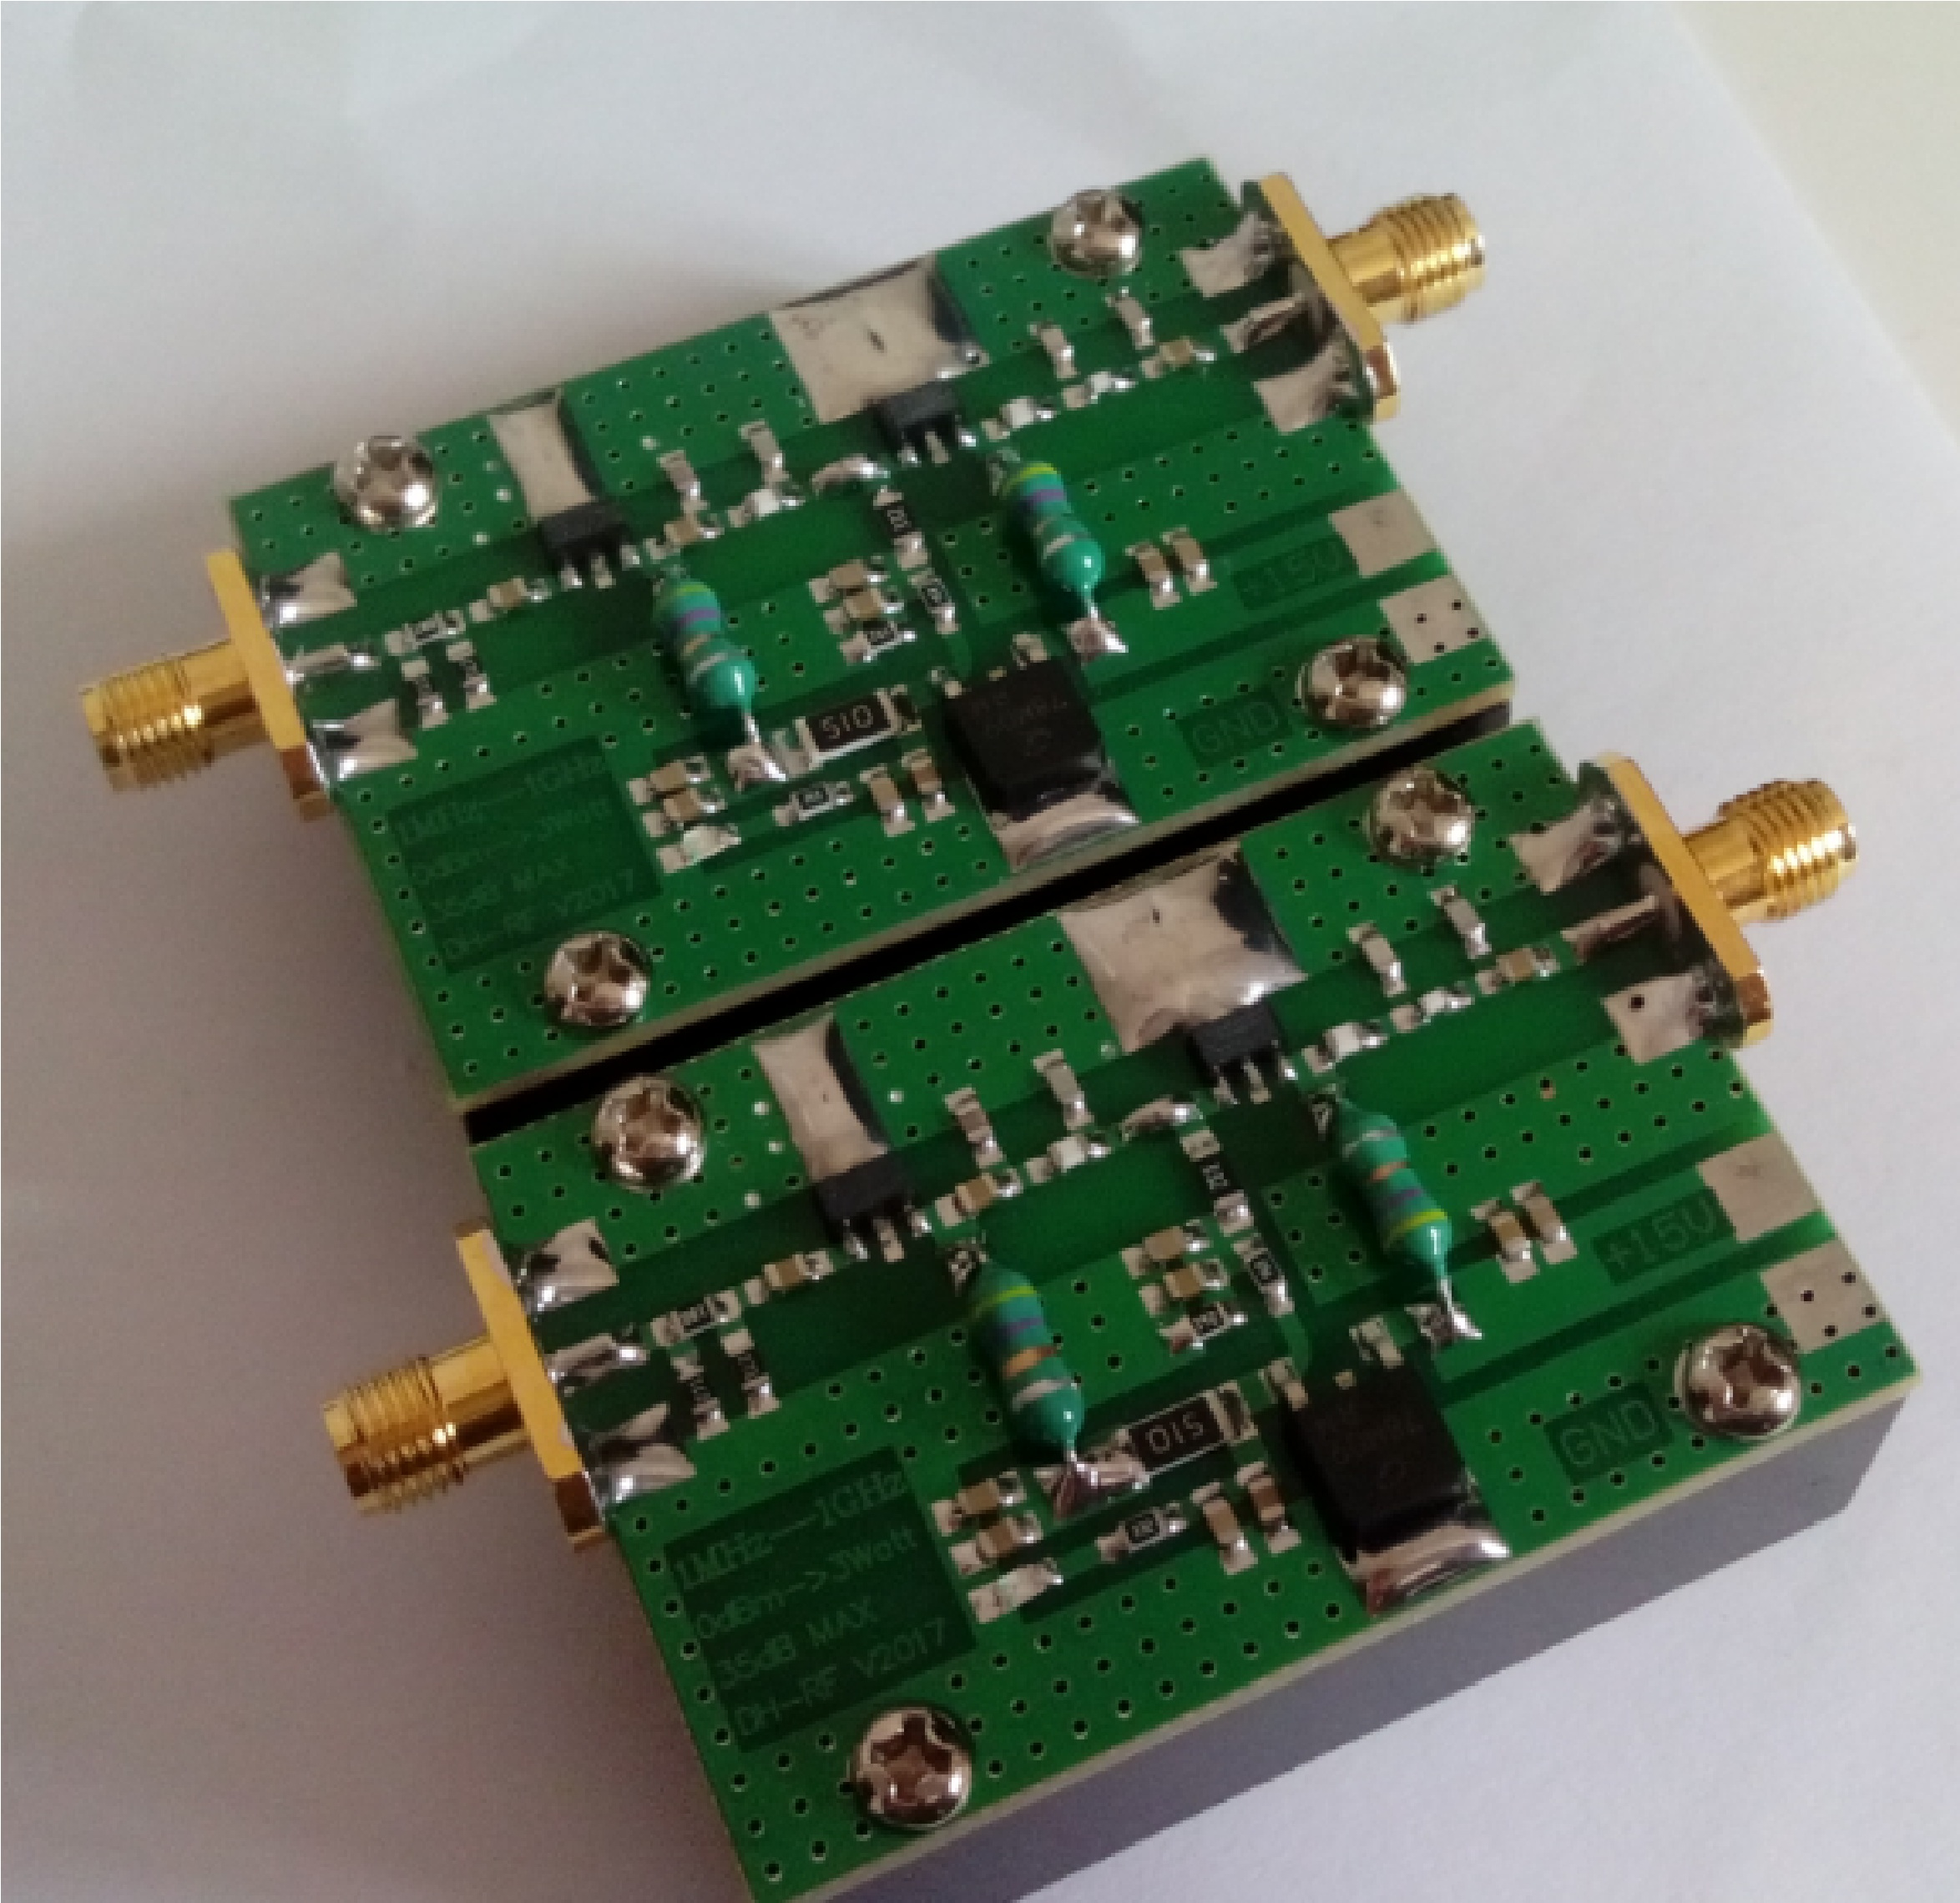 1MHz-1000MHZ 3W RF amplifier HF, FM, VHF, UHF FM transmitting broadband RF amplifier<br>